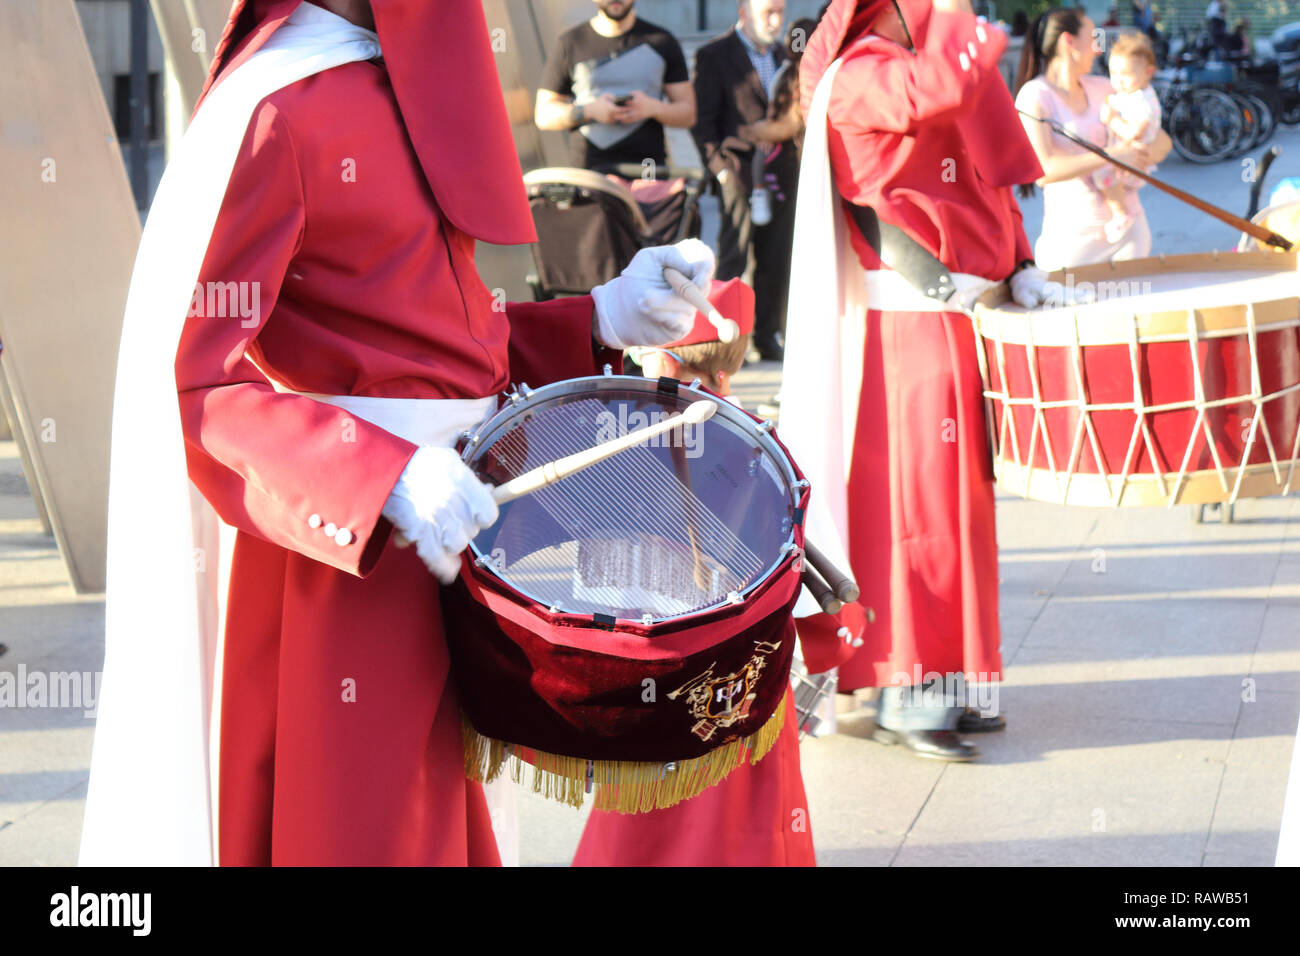 A marching band playing drums in a catholic brotherhood with